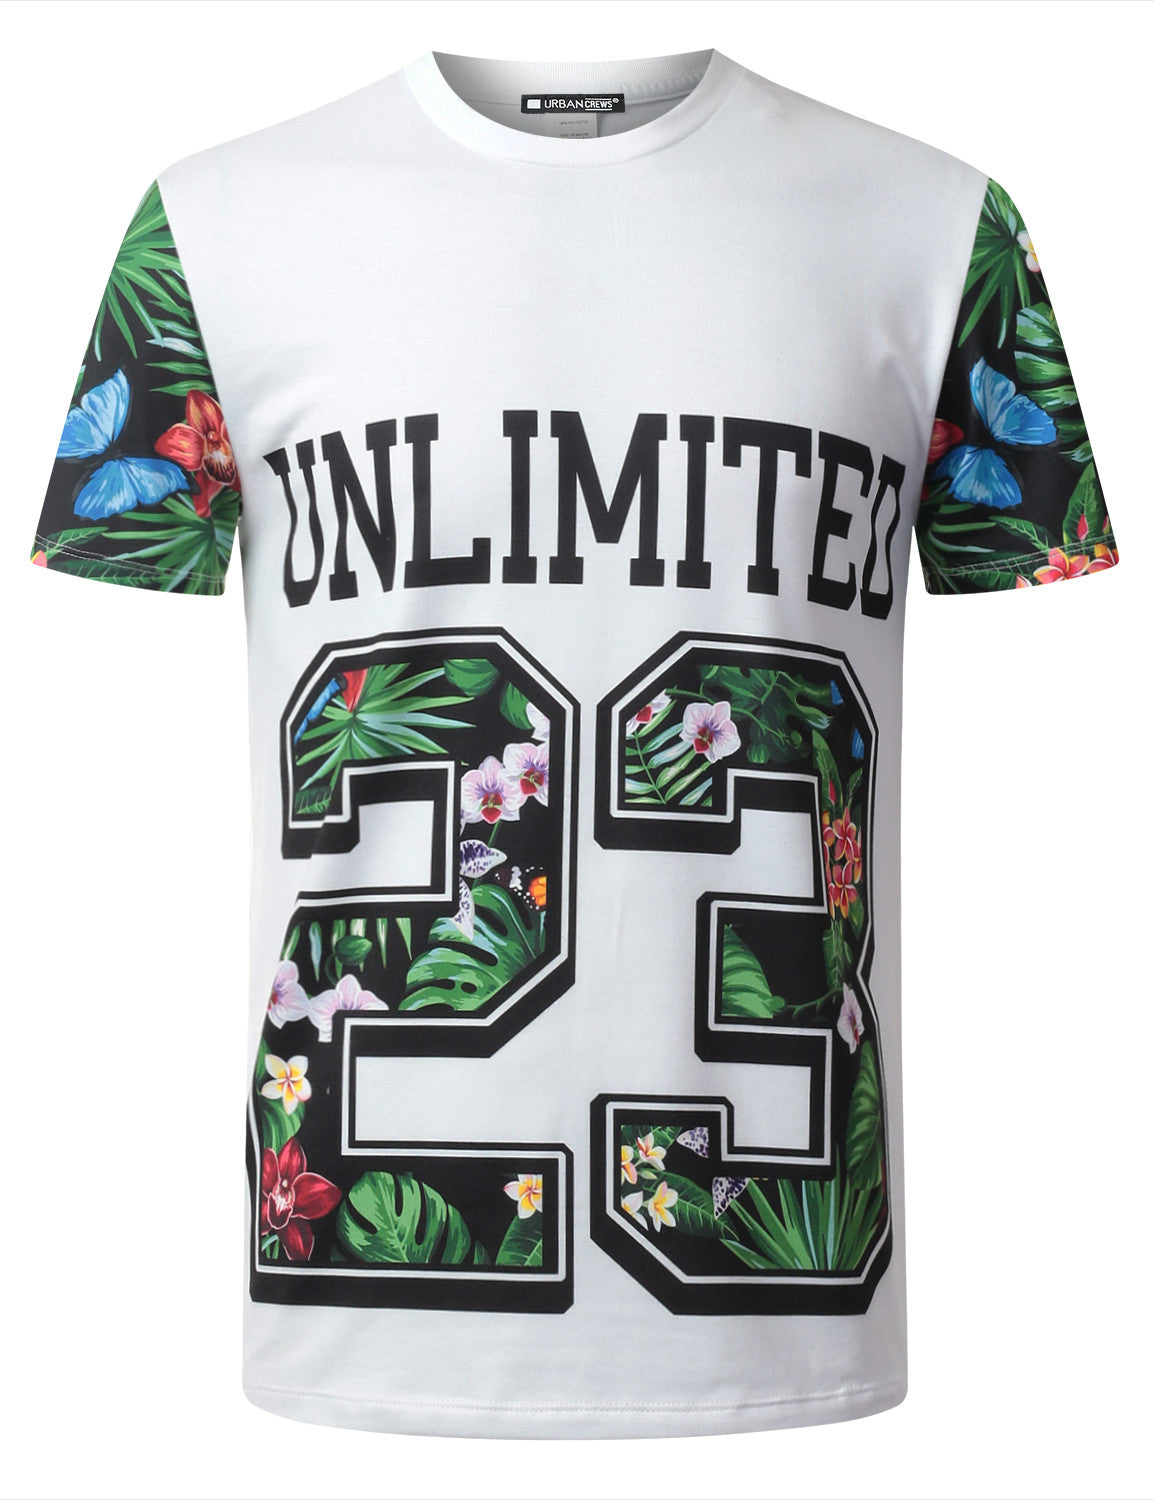 WHITE Unlimited 23 Floral Crewneck Tshirt - URBANCREWS